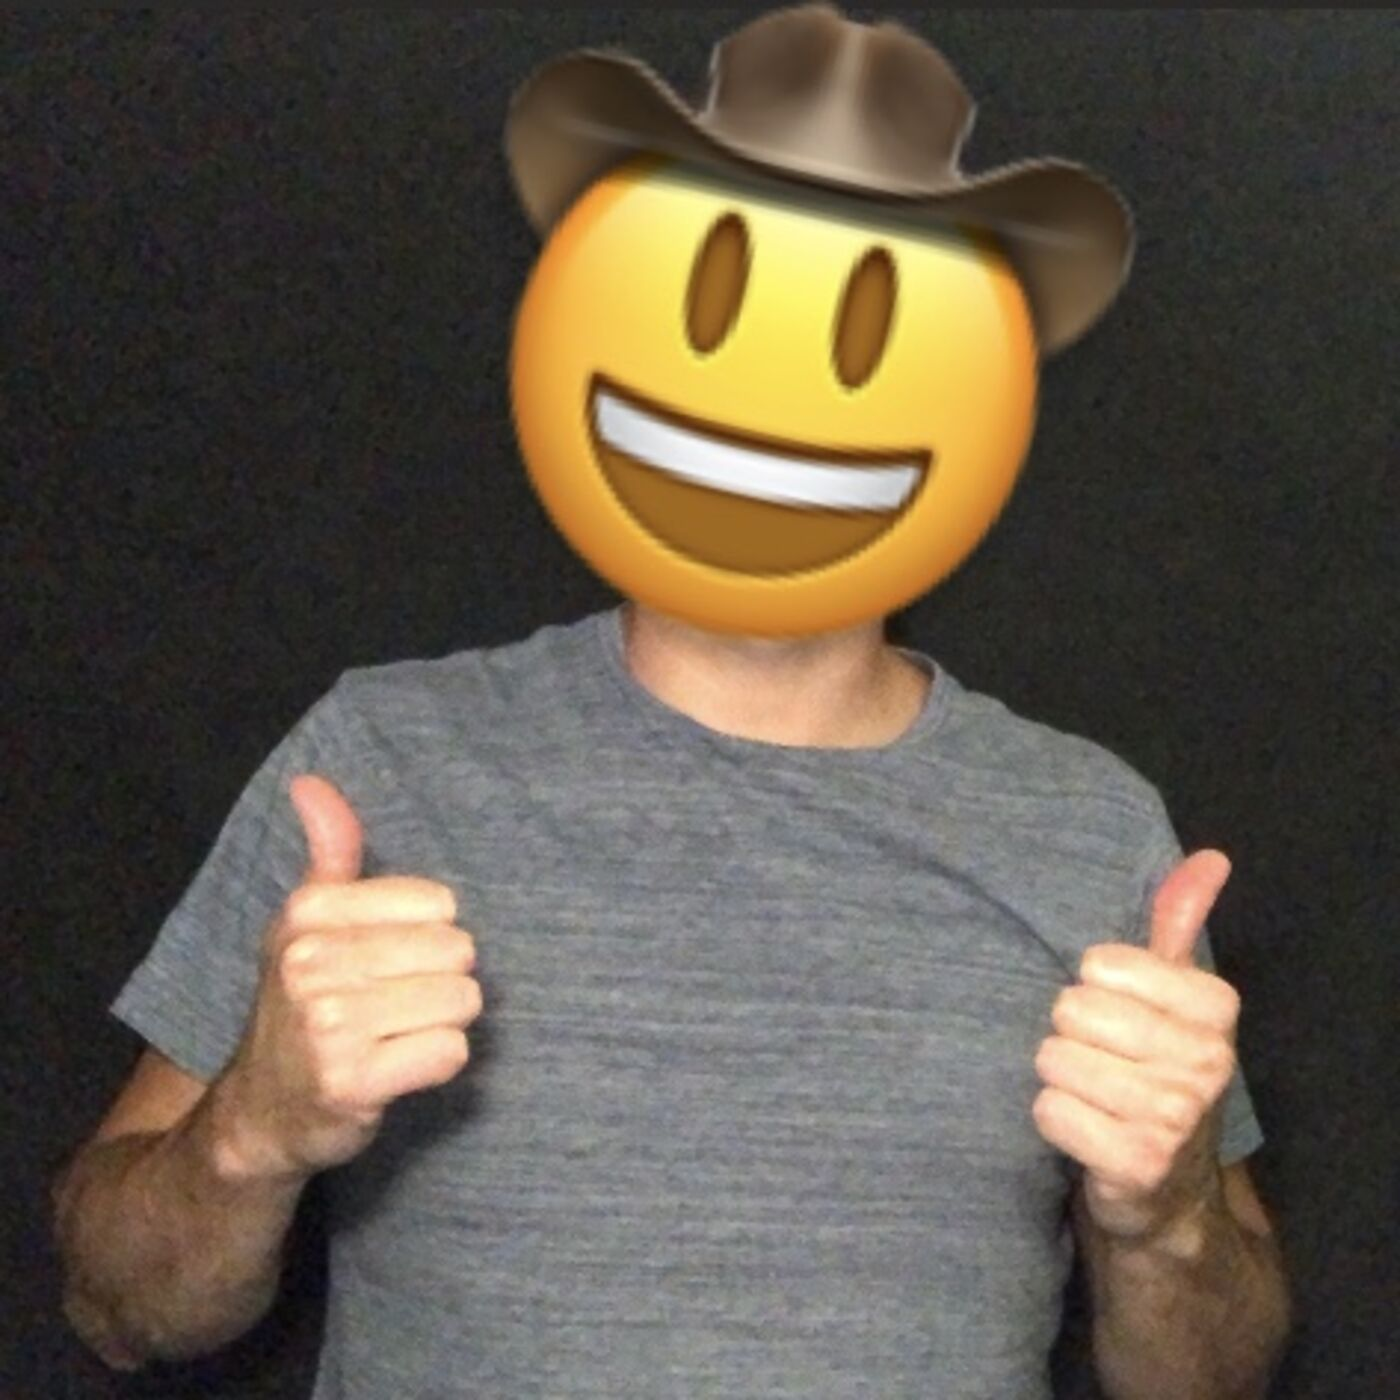 Solocast: Emojis May Be Your Ticket To Better Engagement 👍